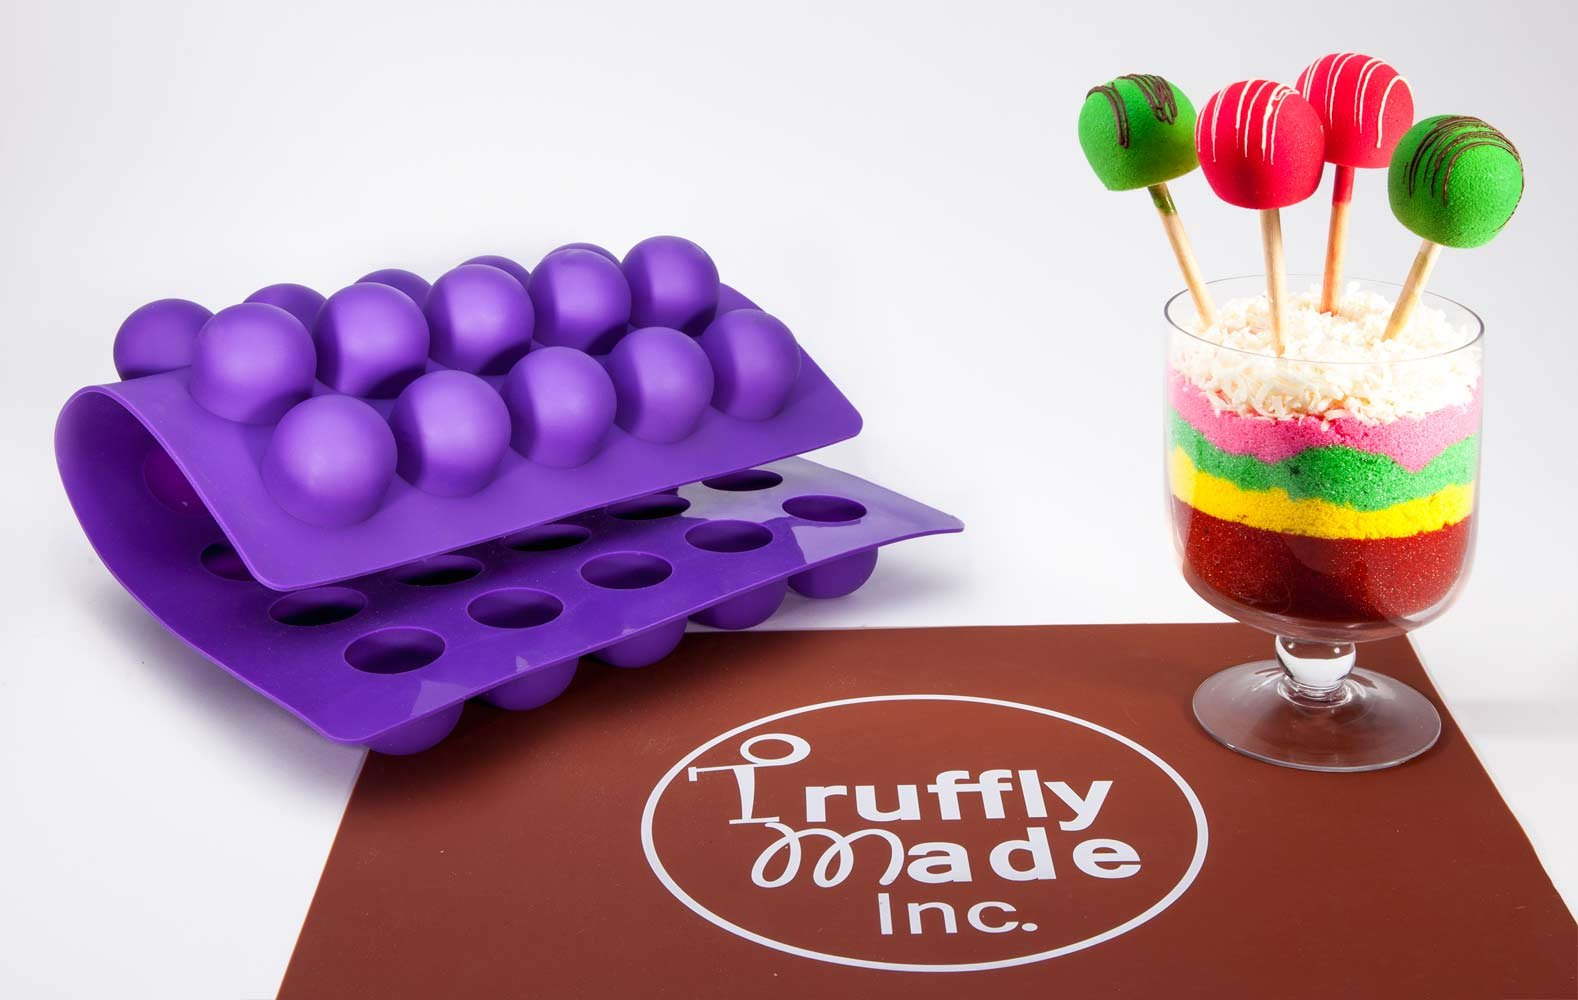 Truffly Made. Big Purple Ice Cream Mold - Sorbet Mold, Mousse Mold, Marshmallow Mold - 35 cavities, One step candy pop-out